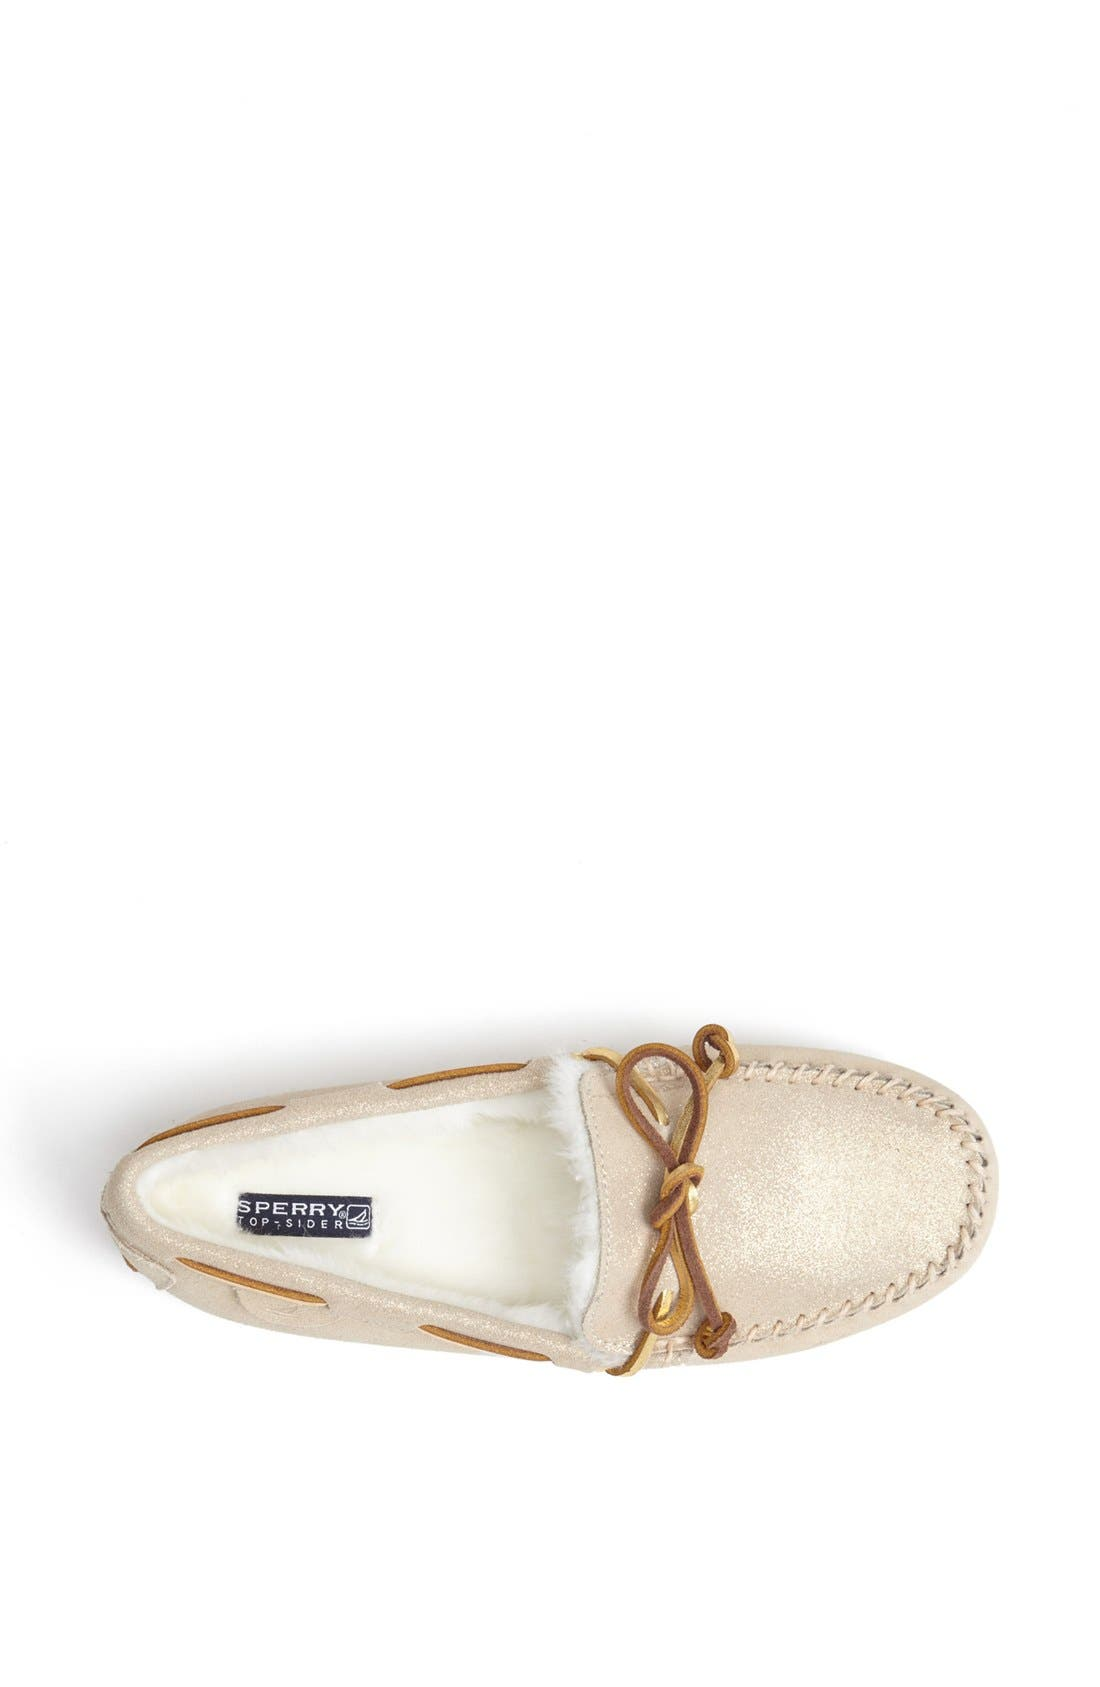 Alternate Image 3  - Sperry Top-Sider® 'Scarlett' Faux Fur Slipper